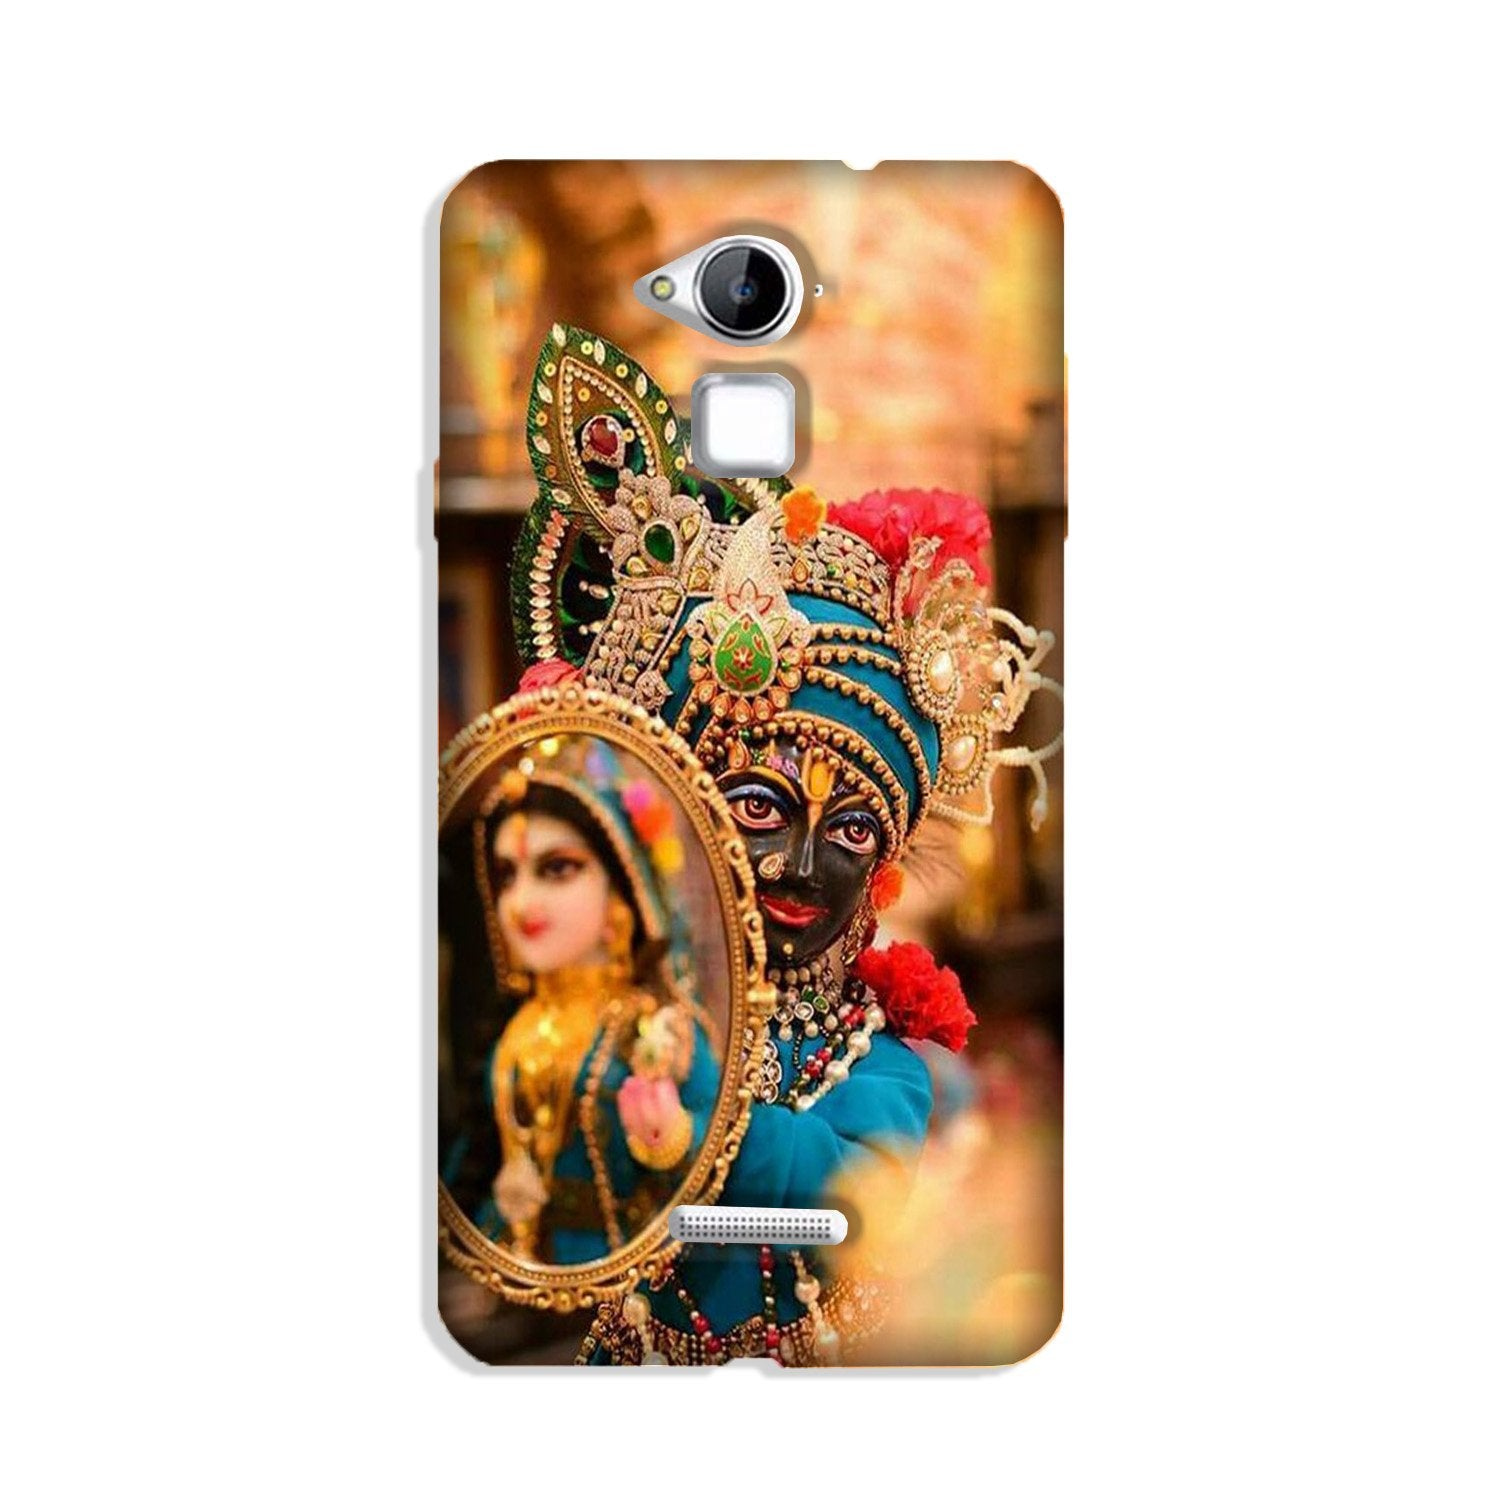 Lord Krishna5 Case for Coolpad Note 3